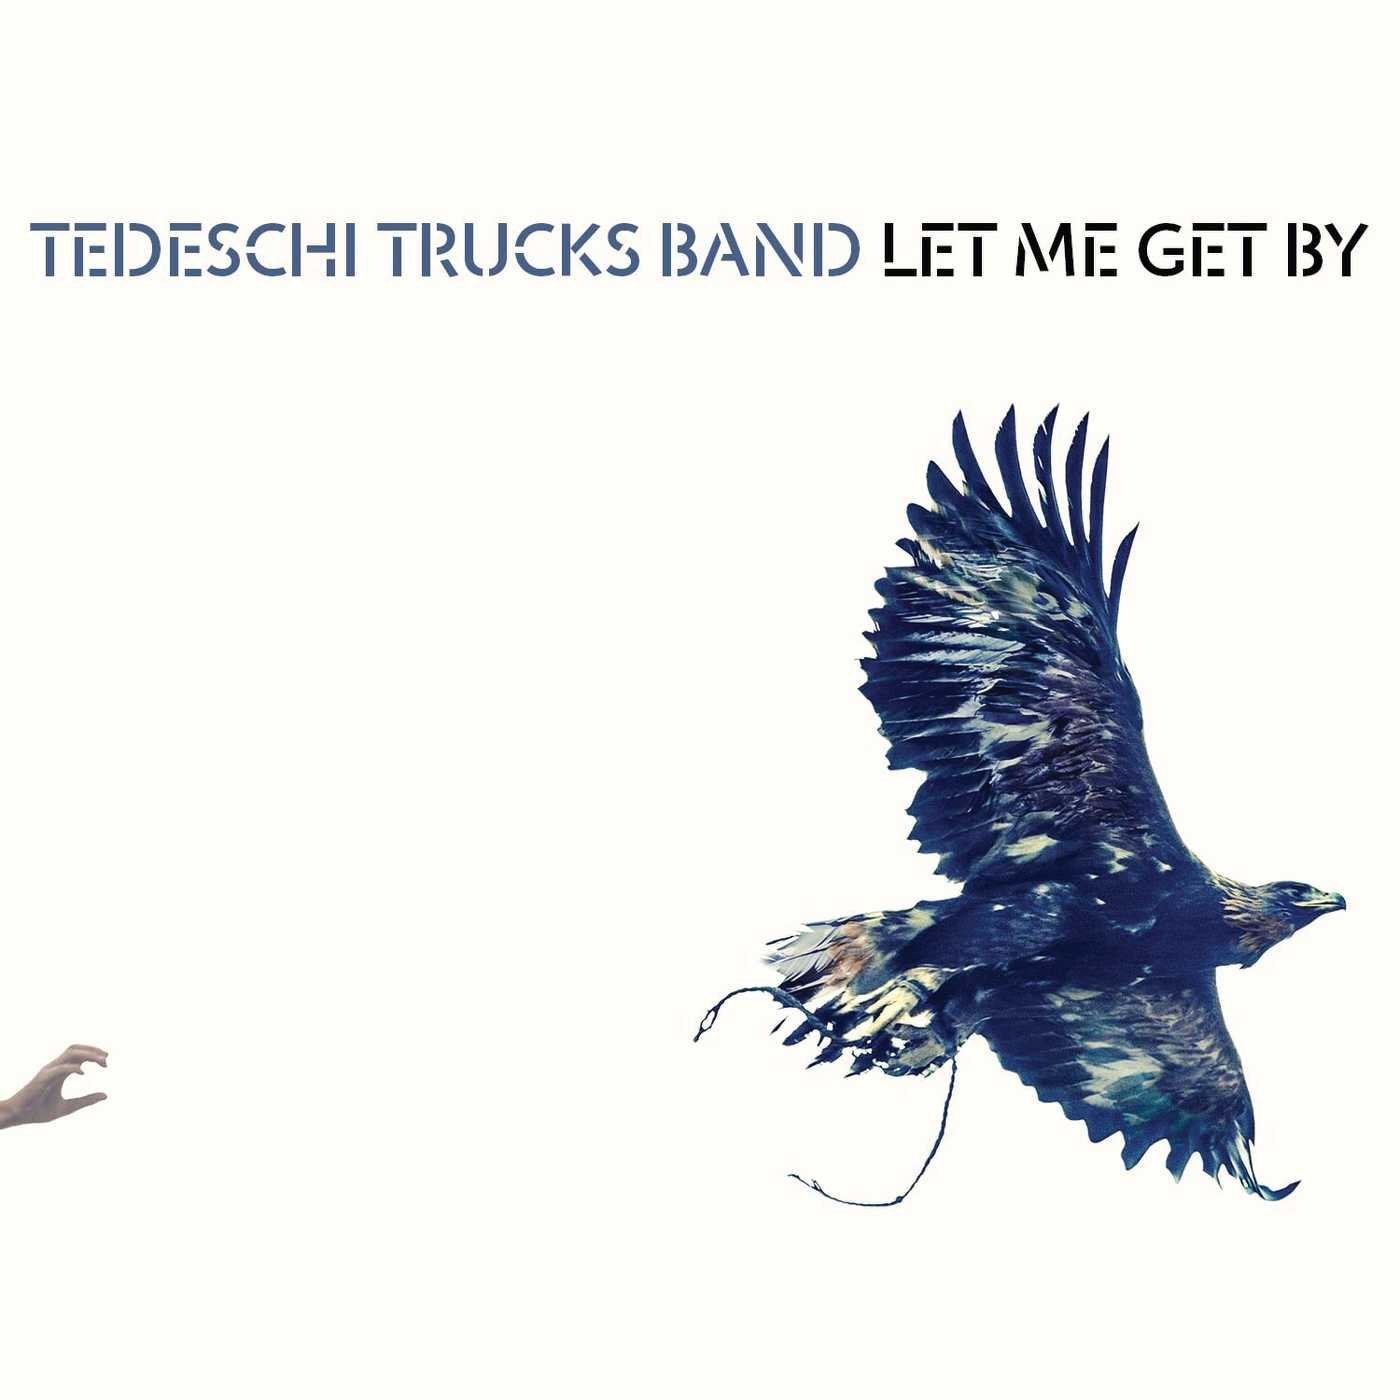 Tedeshi Trucks Band - Let Me Get By - Page 2 61ASx0iEwJL._SL1400_